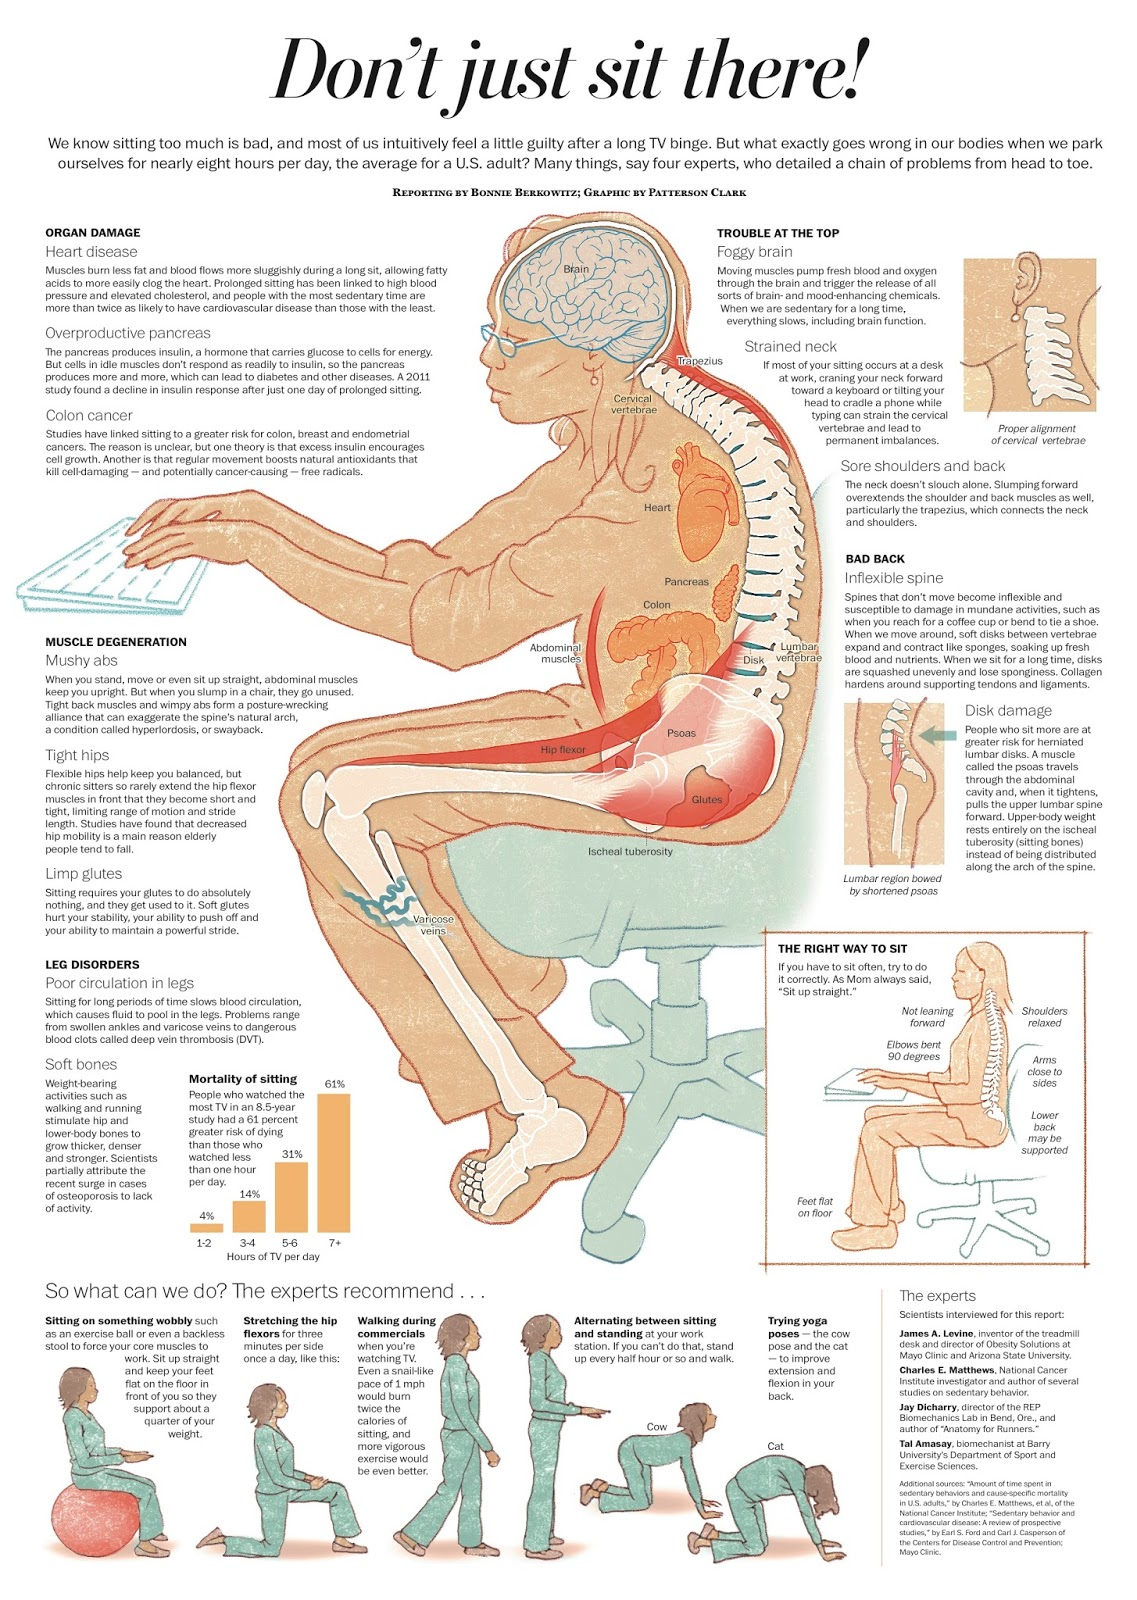 Find out why sitting is seriously damaging your health, and what to do about it.